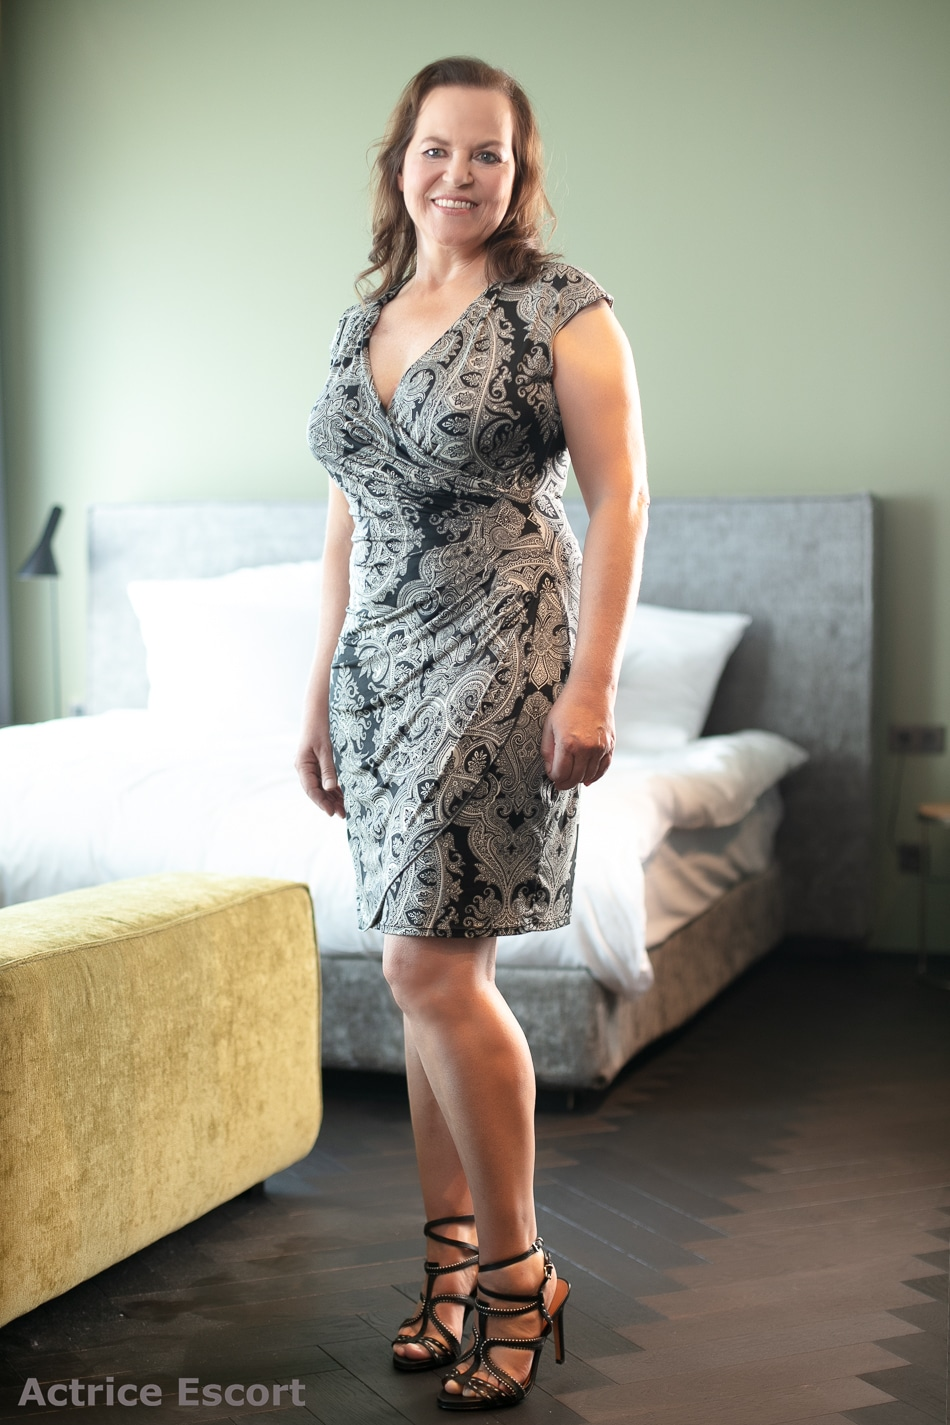 Bettina reife Frau Escortservice Duesseldorf(35)